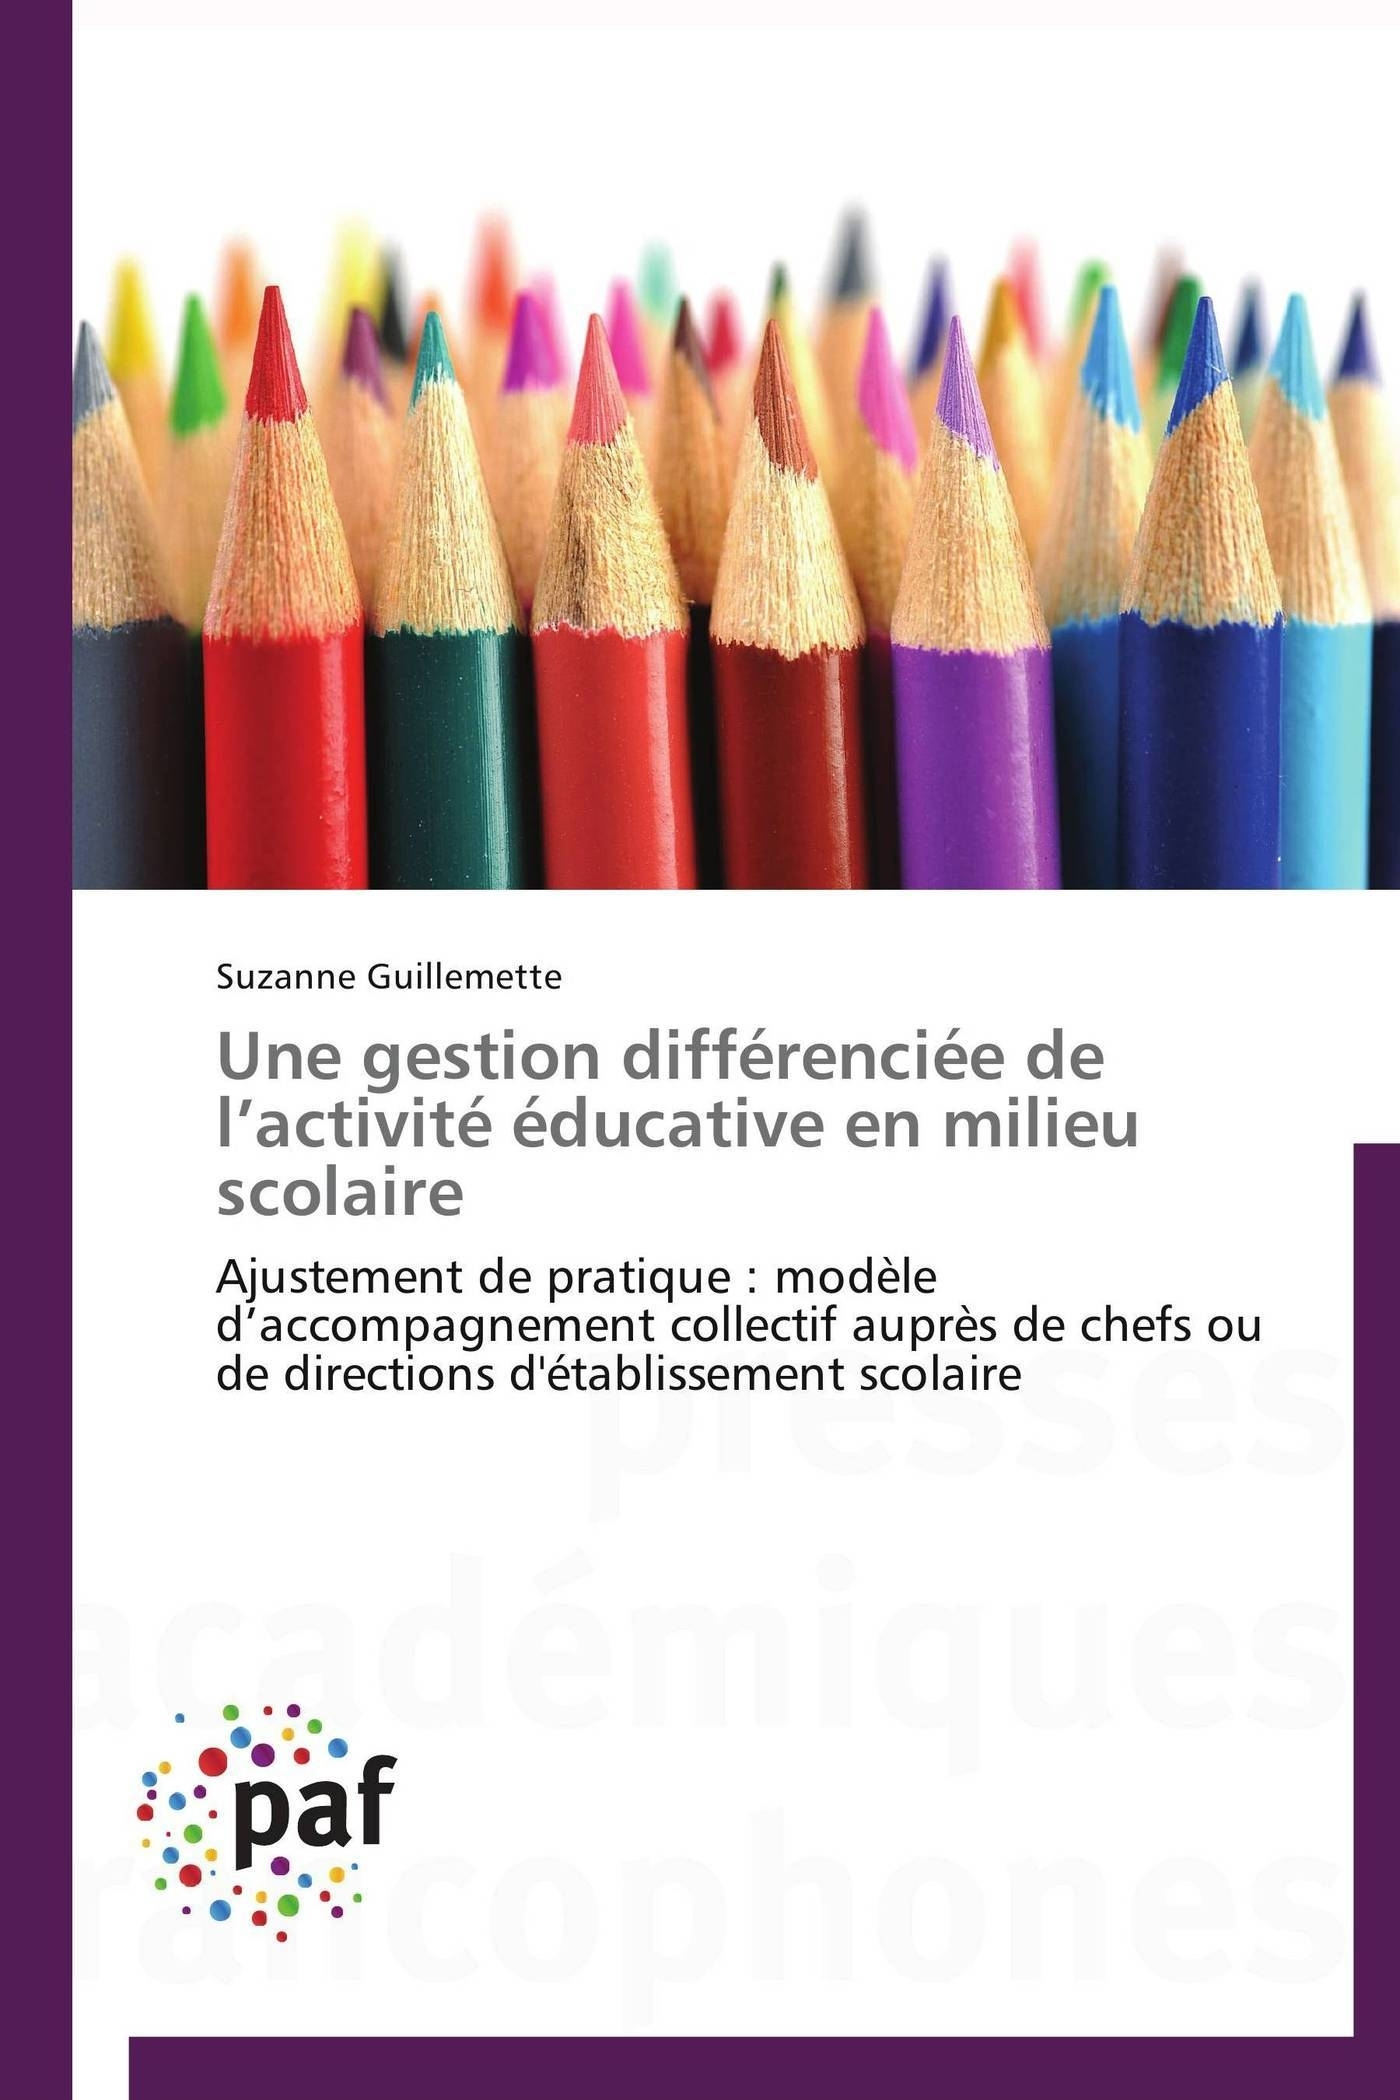 UNE GESTION DIFFERENCIEE DE L ACTIVITE EDUCATIVE EN MILIEU SCOLAIRE